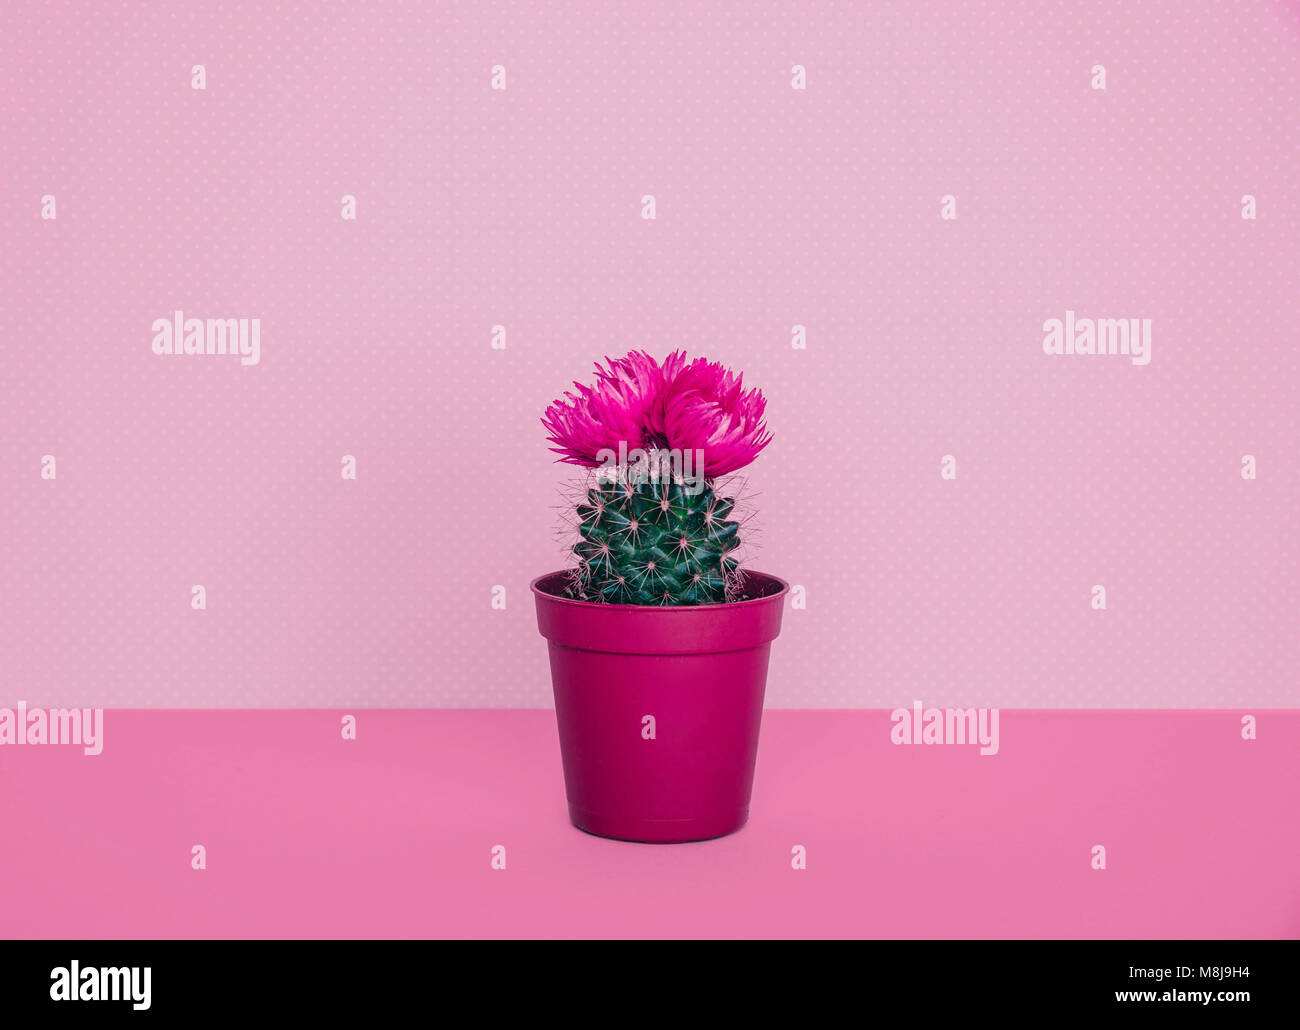 Small cactus in a flowerpot on a trendy background creative minimal small cactus in a flowerpot on a trendy background creative minimal stock photo 177423600 alamy mightylinksfo Images